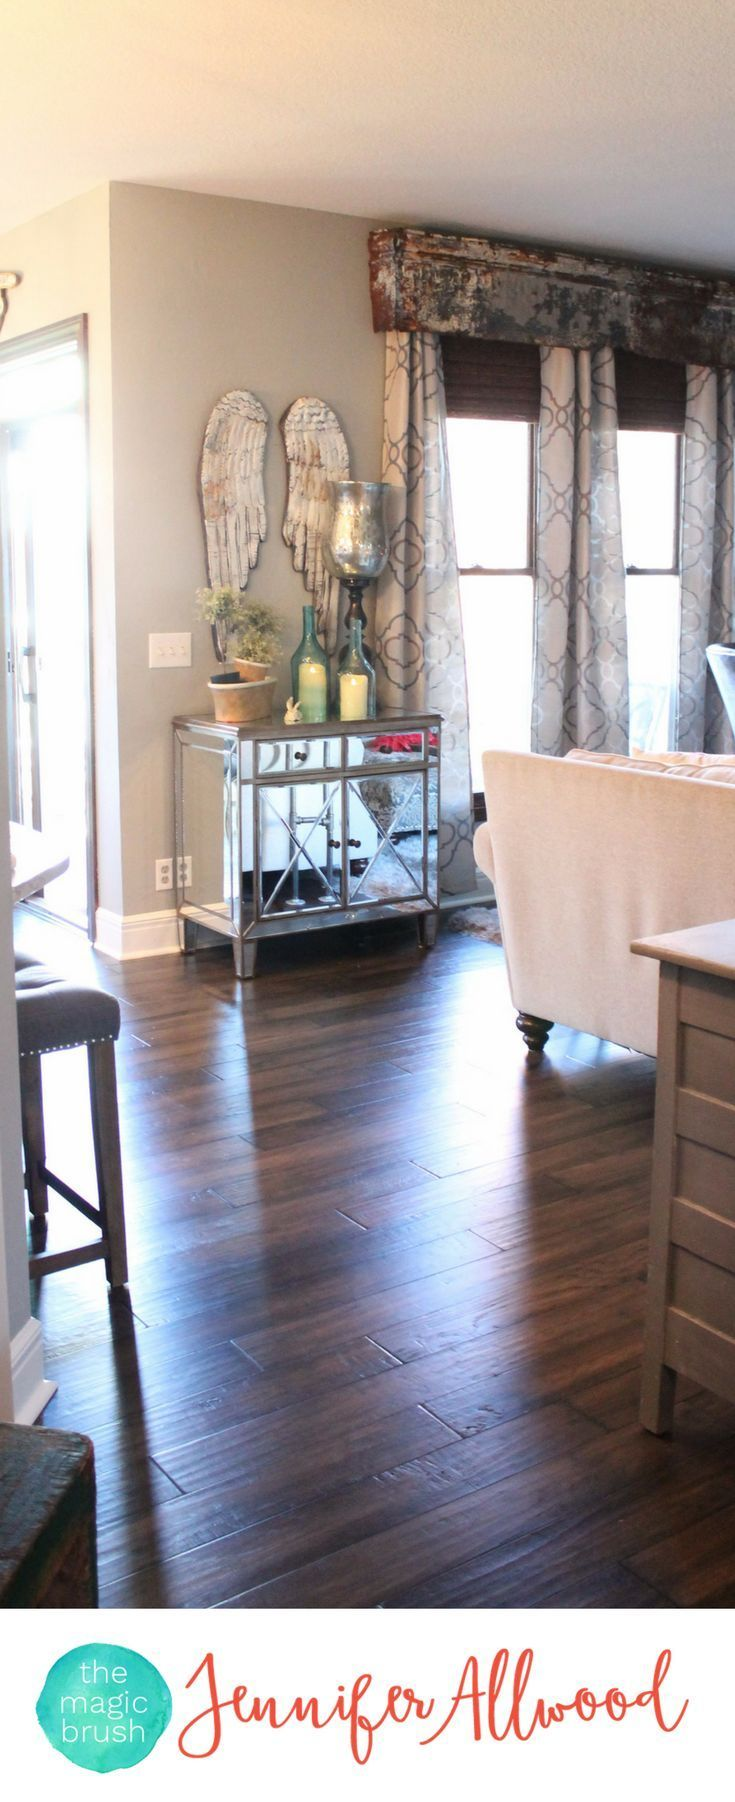 Info's : Replacing Golden Oak Hardwood Floors with new beautiful gray/brown hardwood floors for a total house makeover | Magic Brush | Hardwood Flooring Ideas and Hardwood Floor Colors #hardwood #floors #diy #homedecor